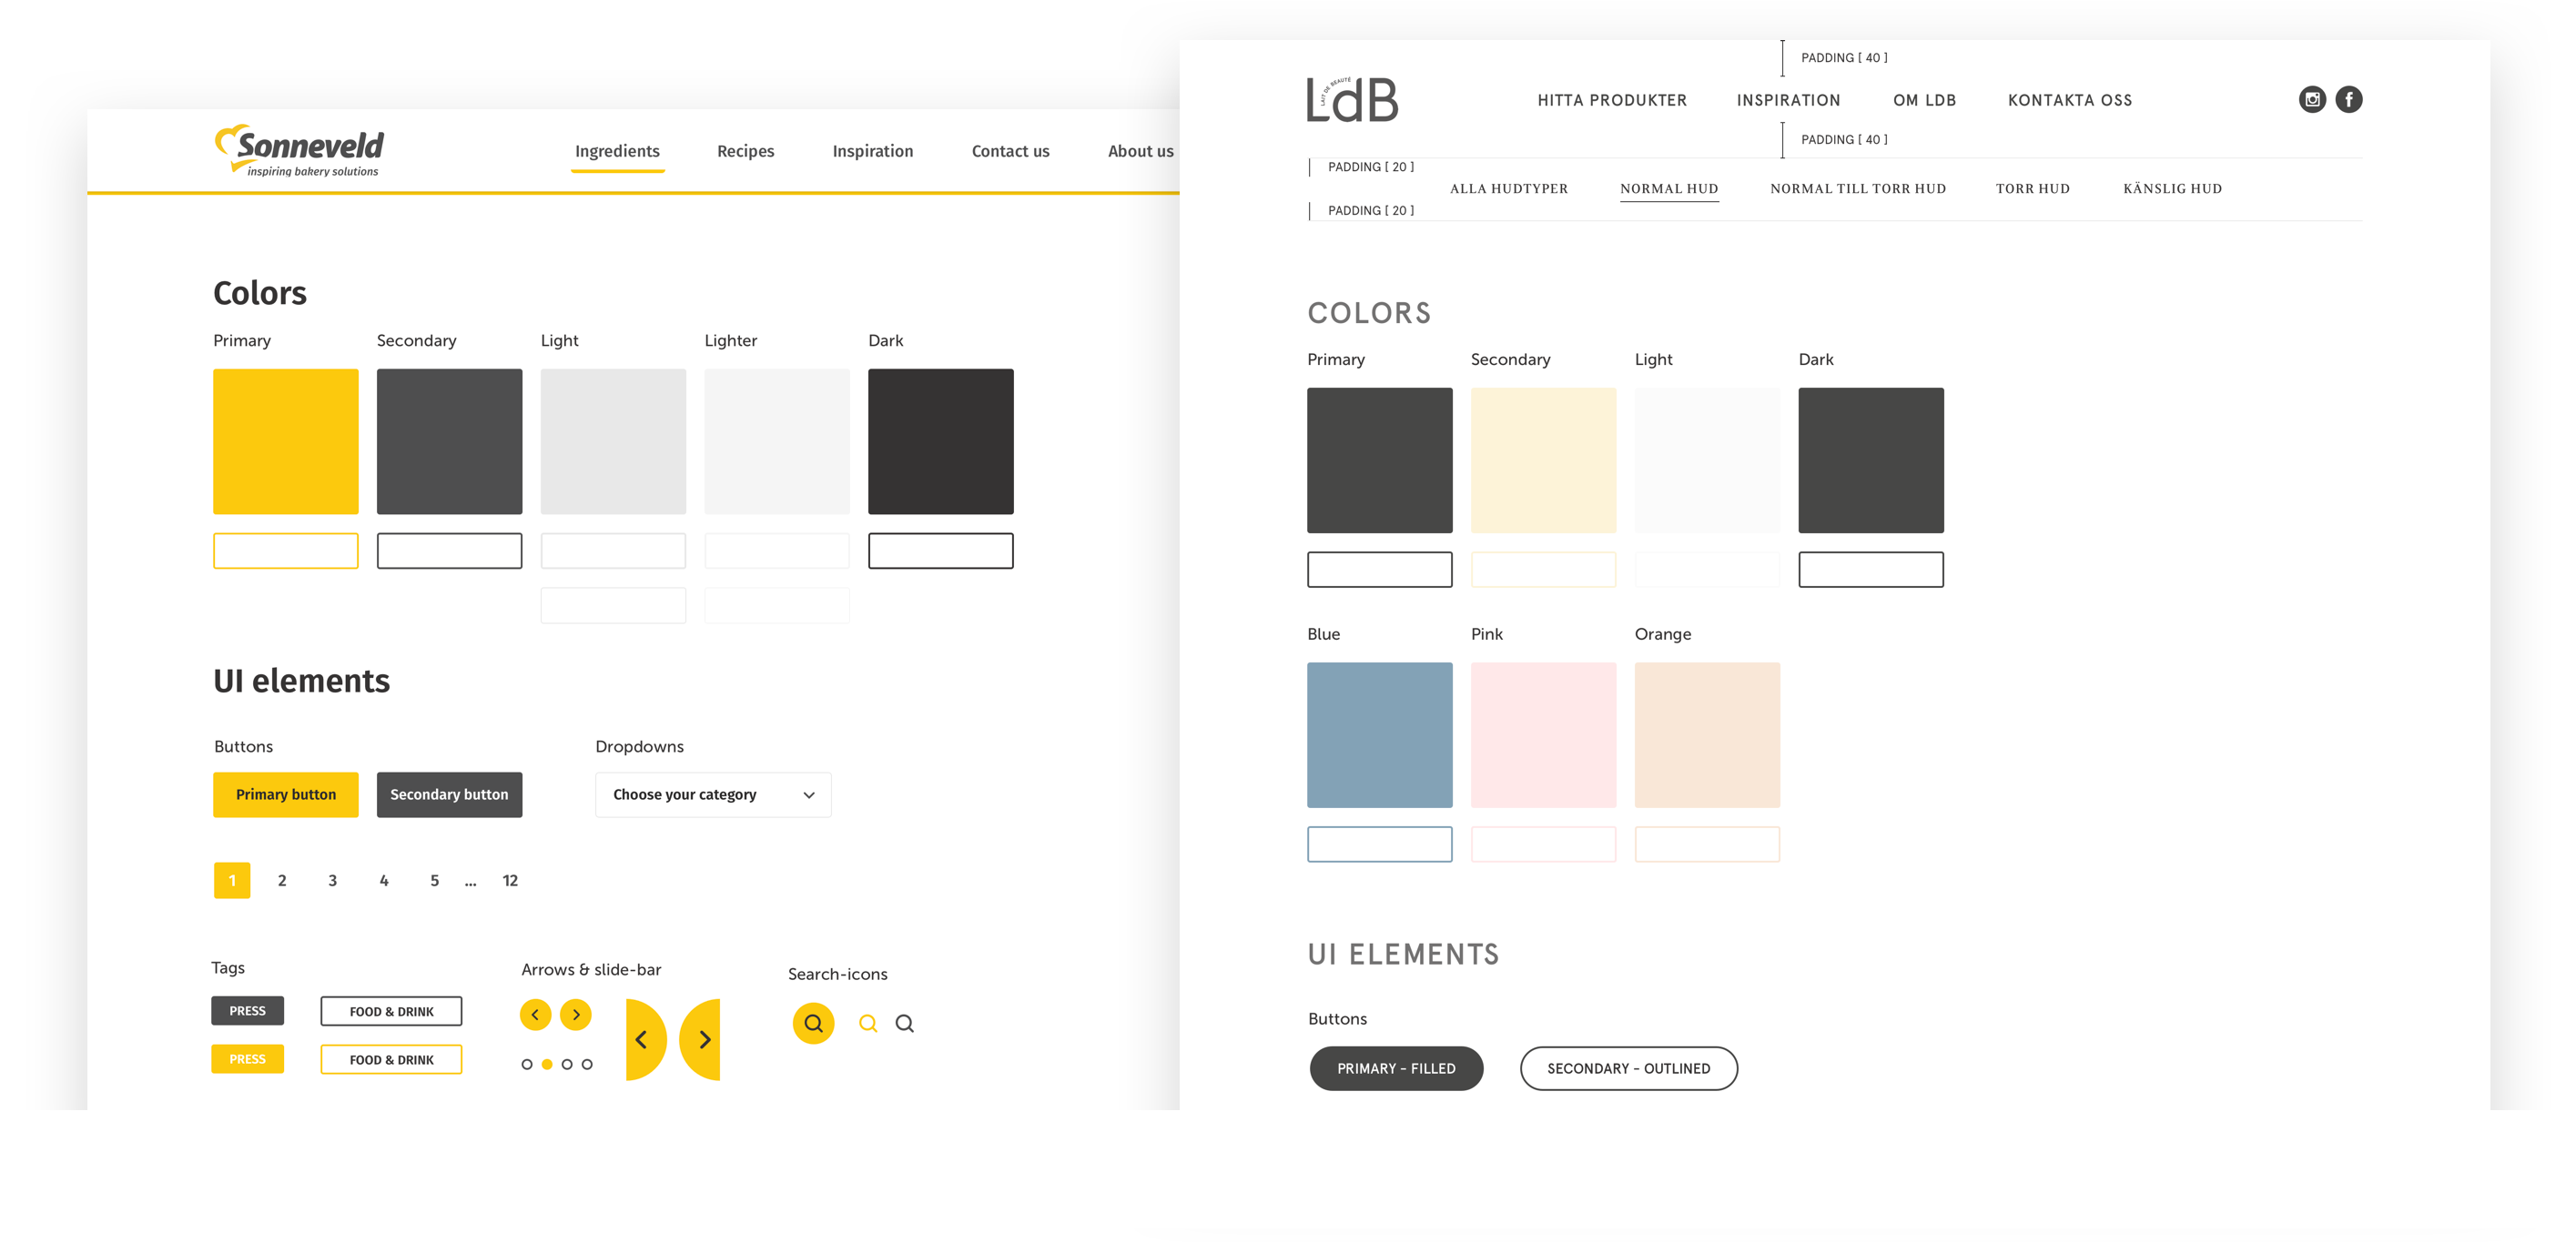 The color schemes used for Sonneveld and Ldb on the One Orkla Web Platform